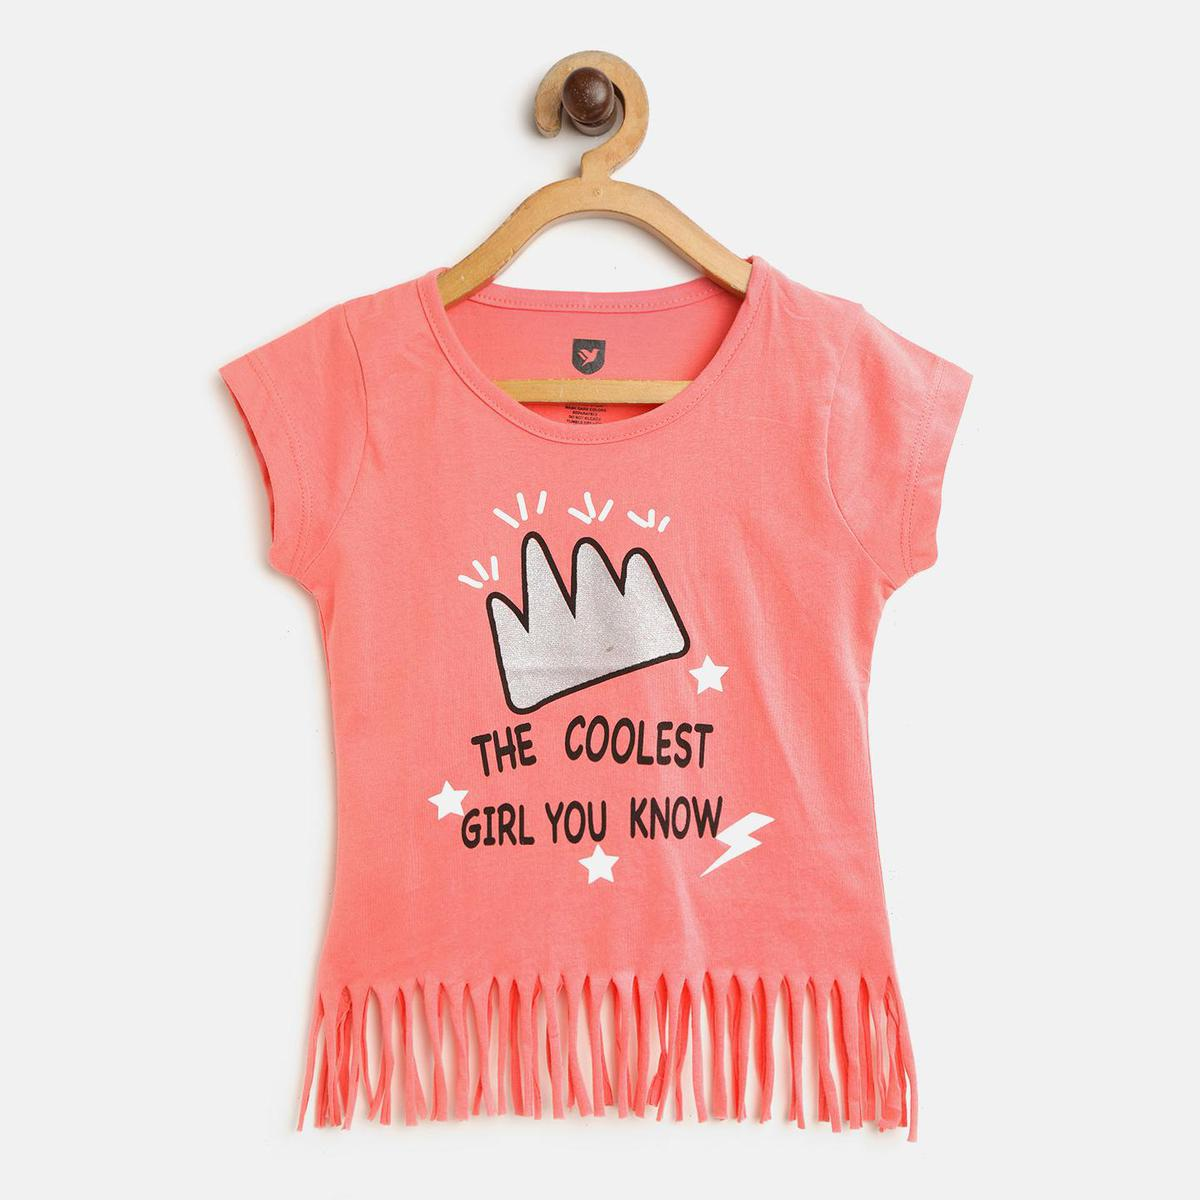 612 League - Peach Colored Coolest Girl Top For Girls